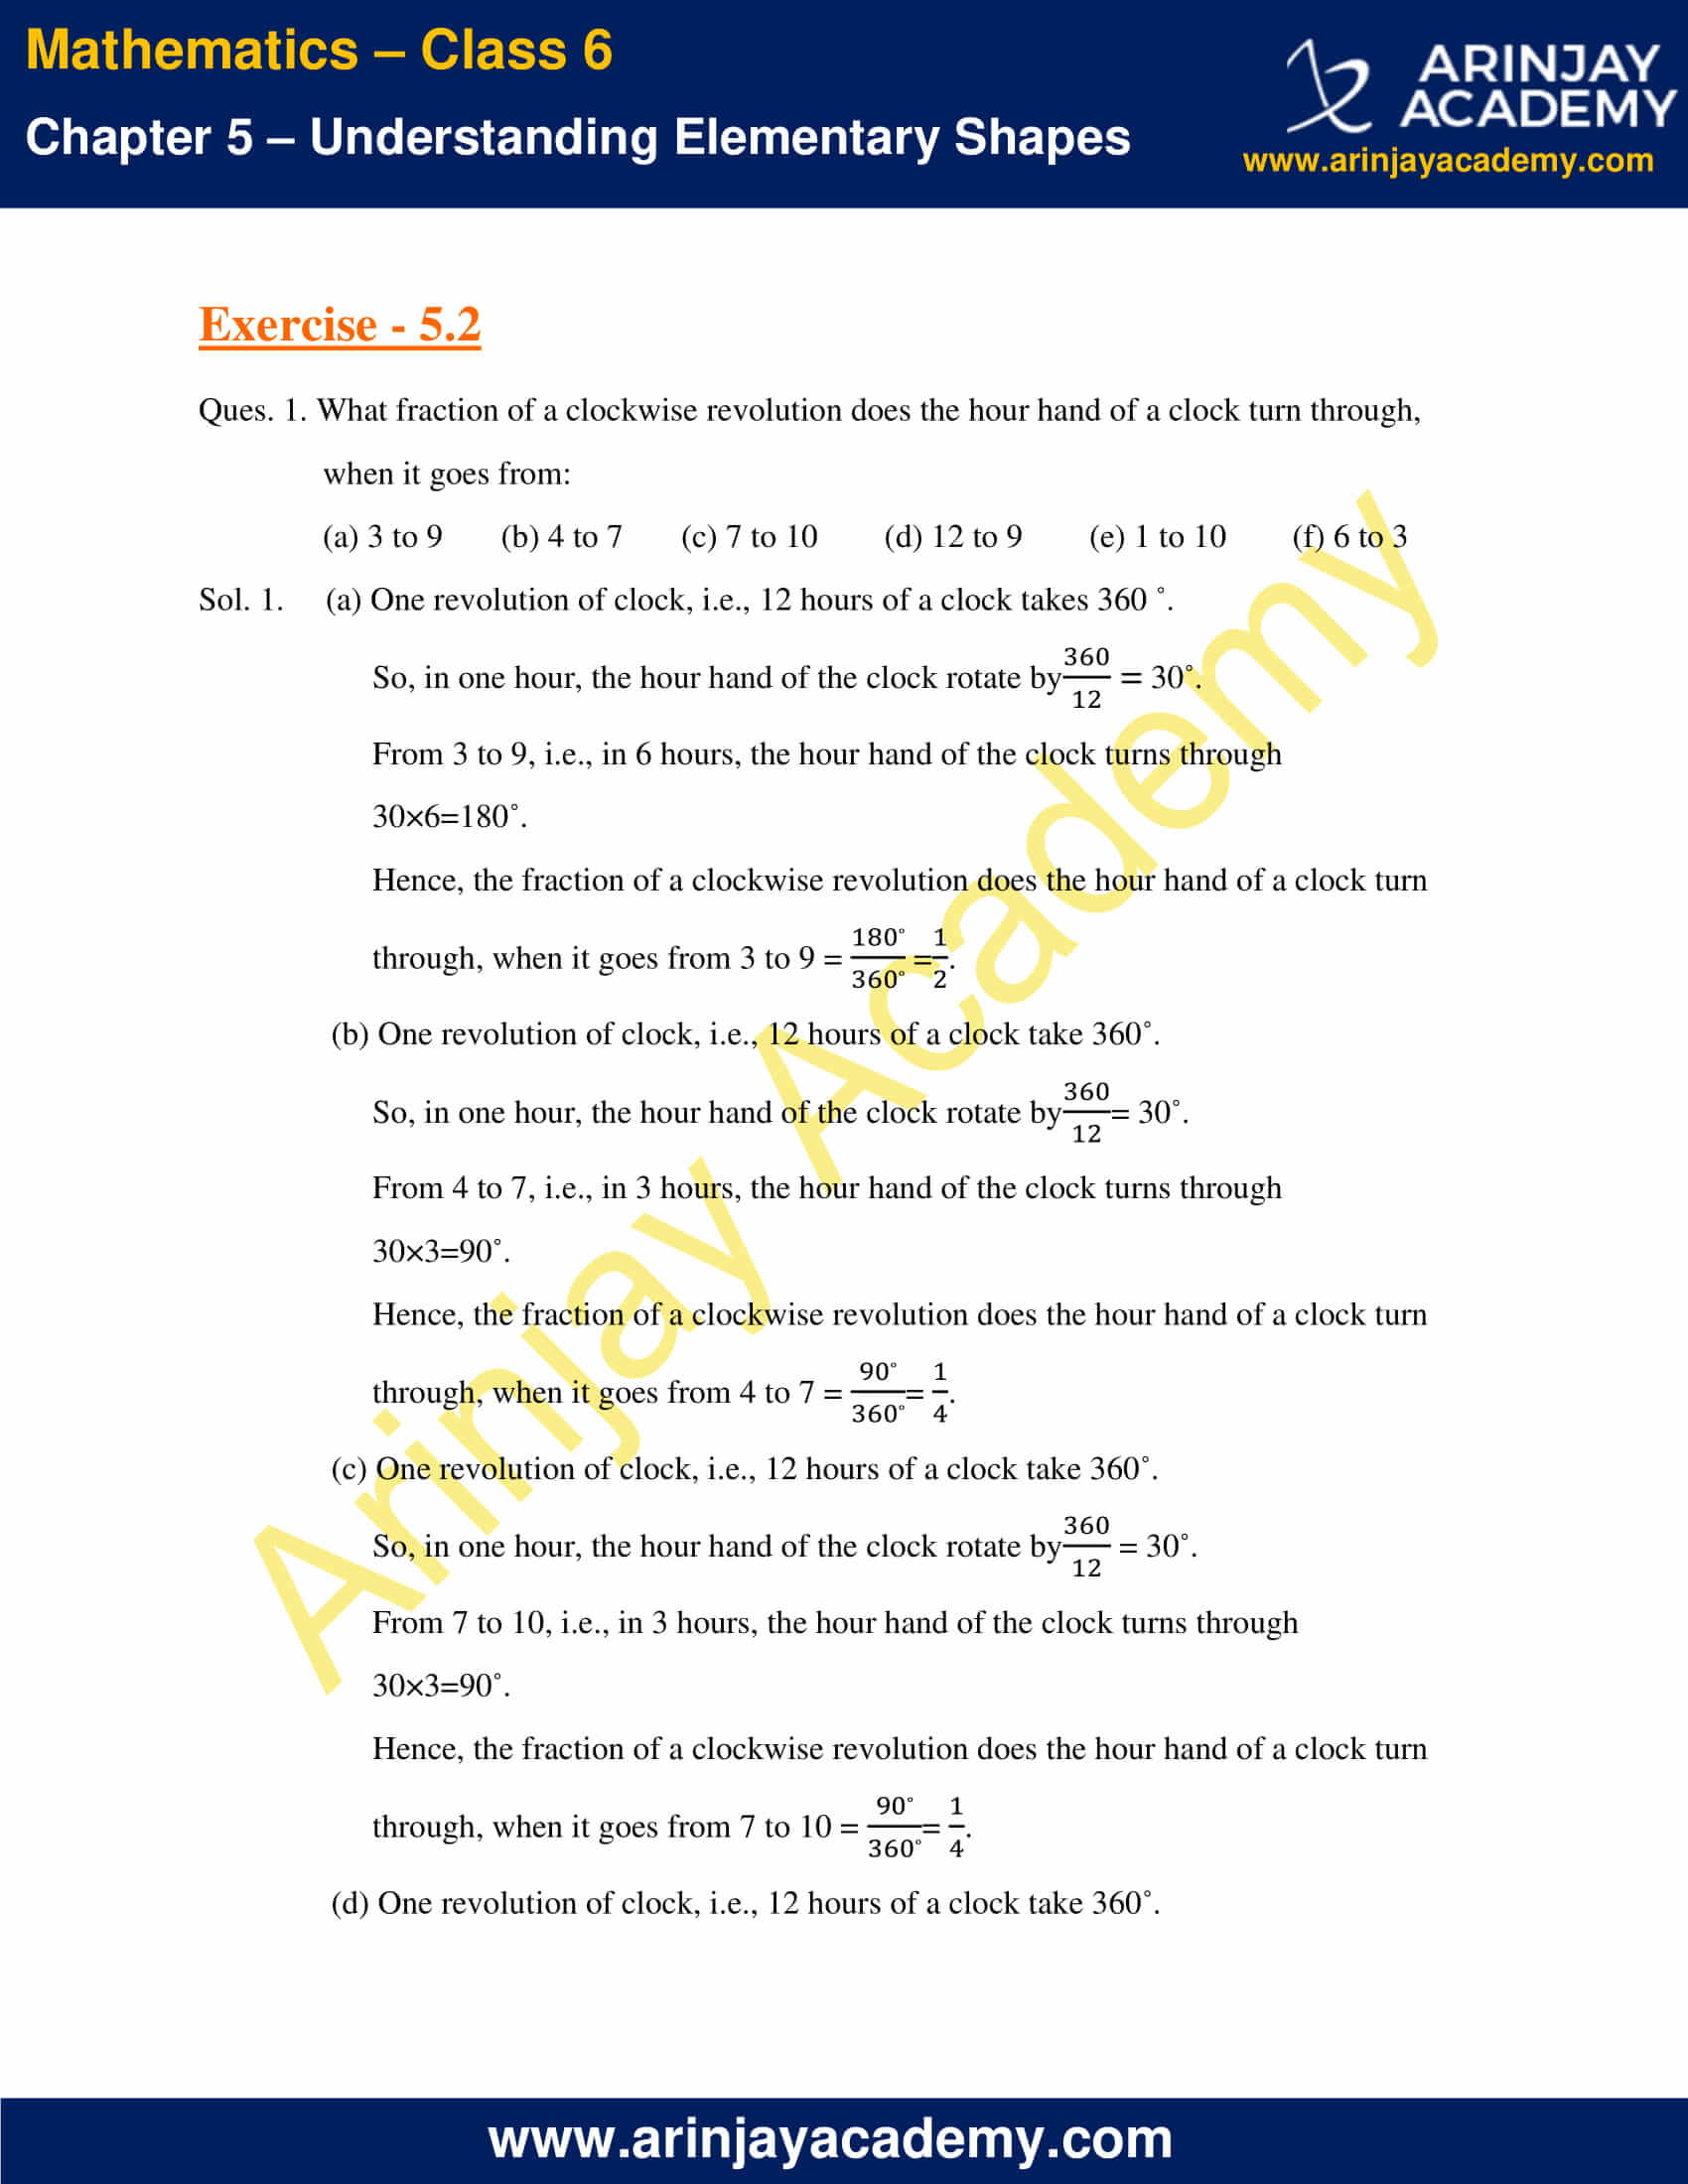 NCERT Solutions for Class 6 Maths Chapter 5 Exercise 5.2 image 1